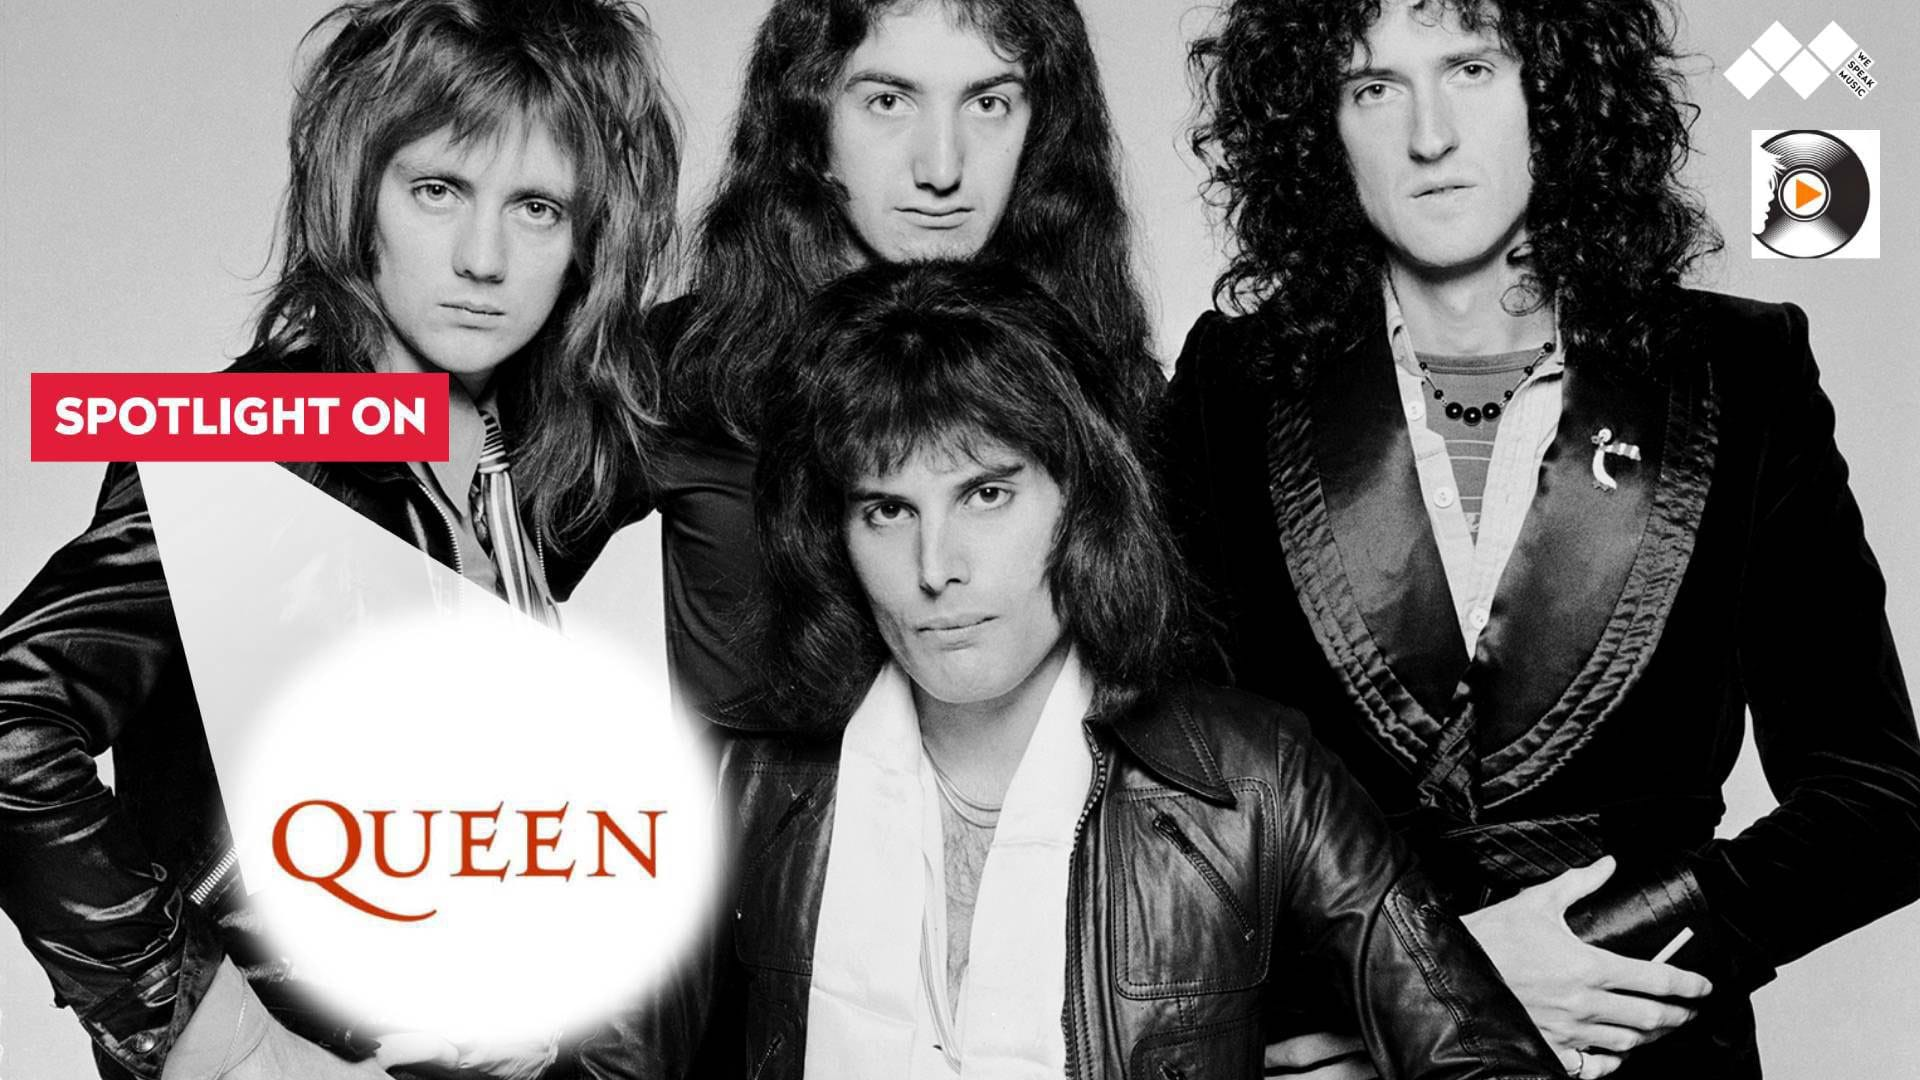 Spotlight On: Queen